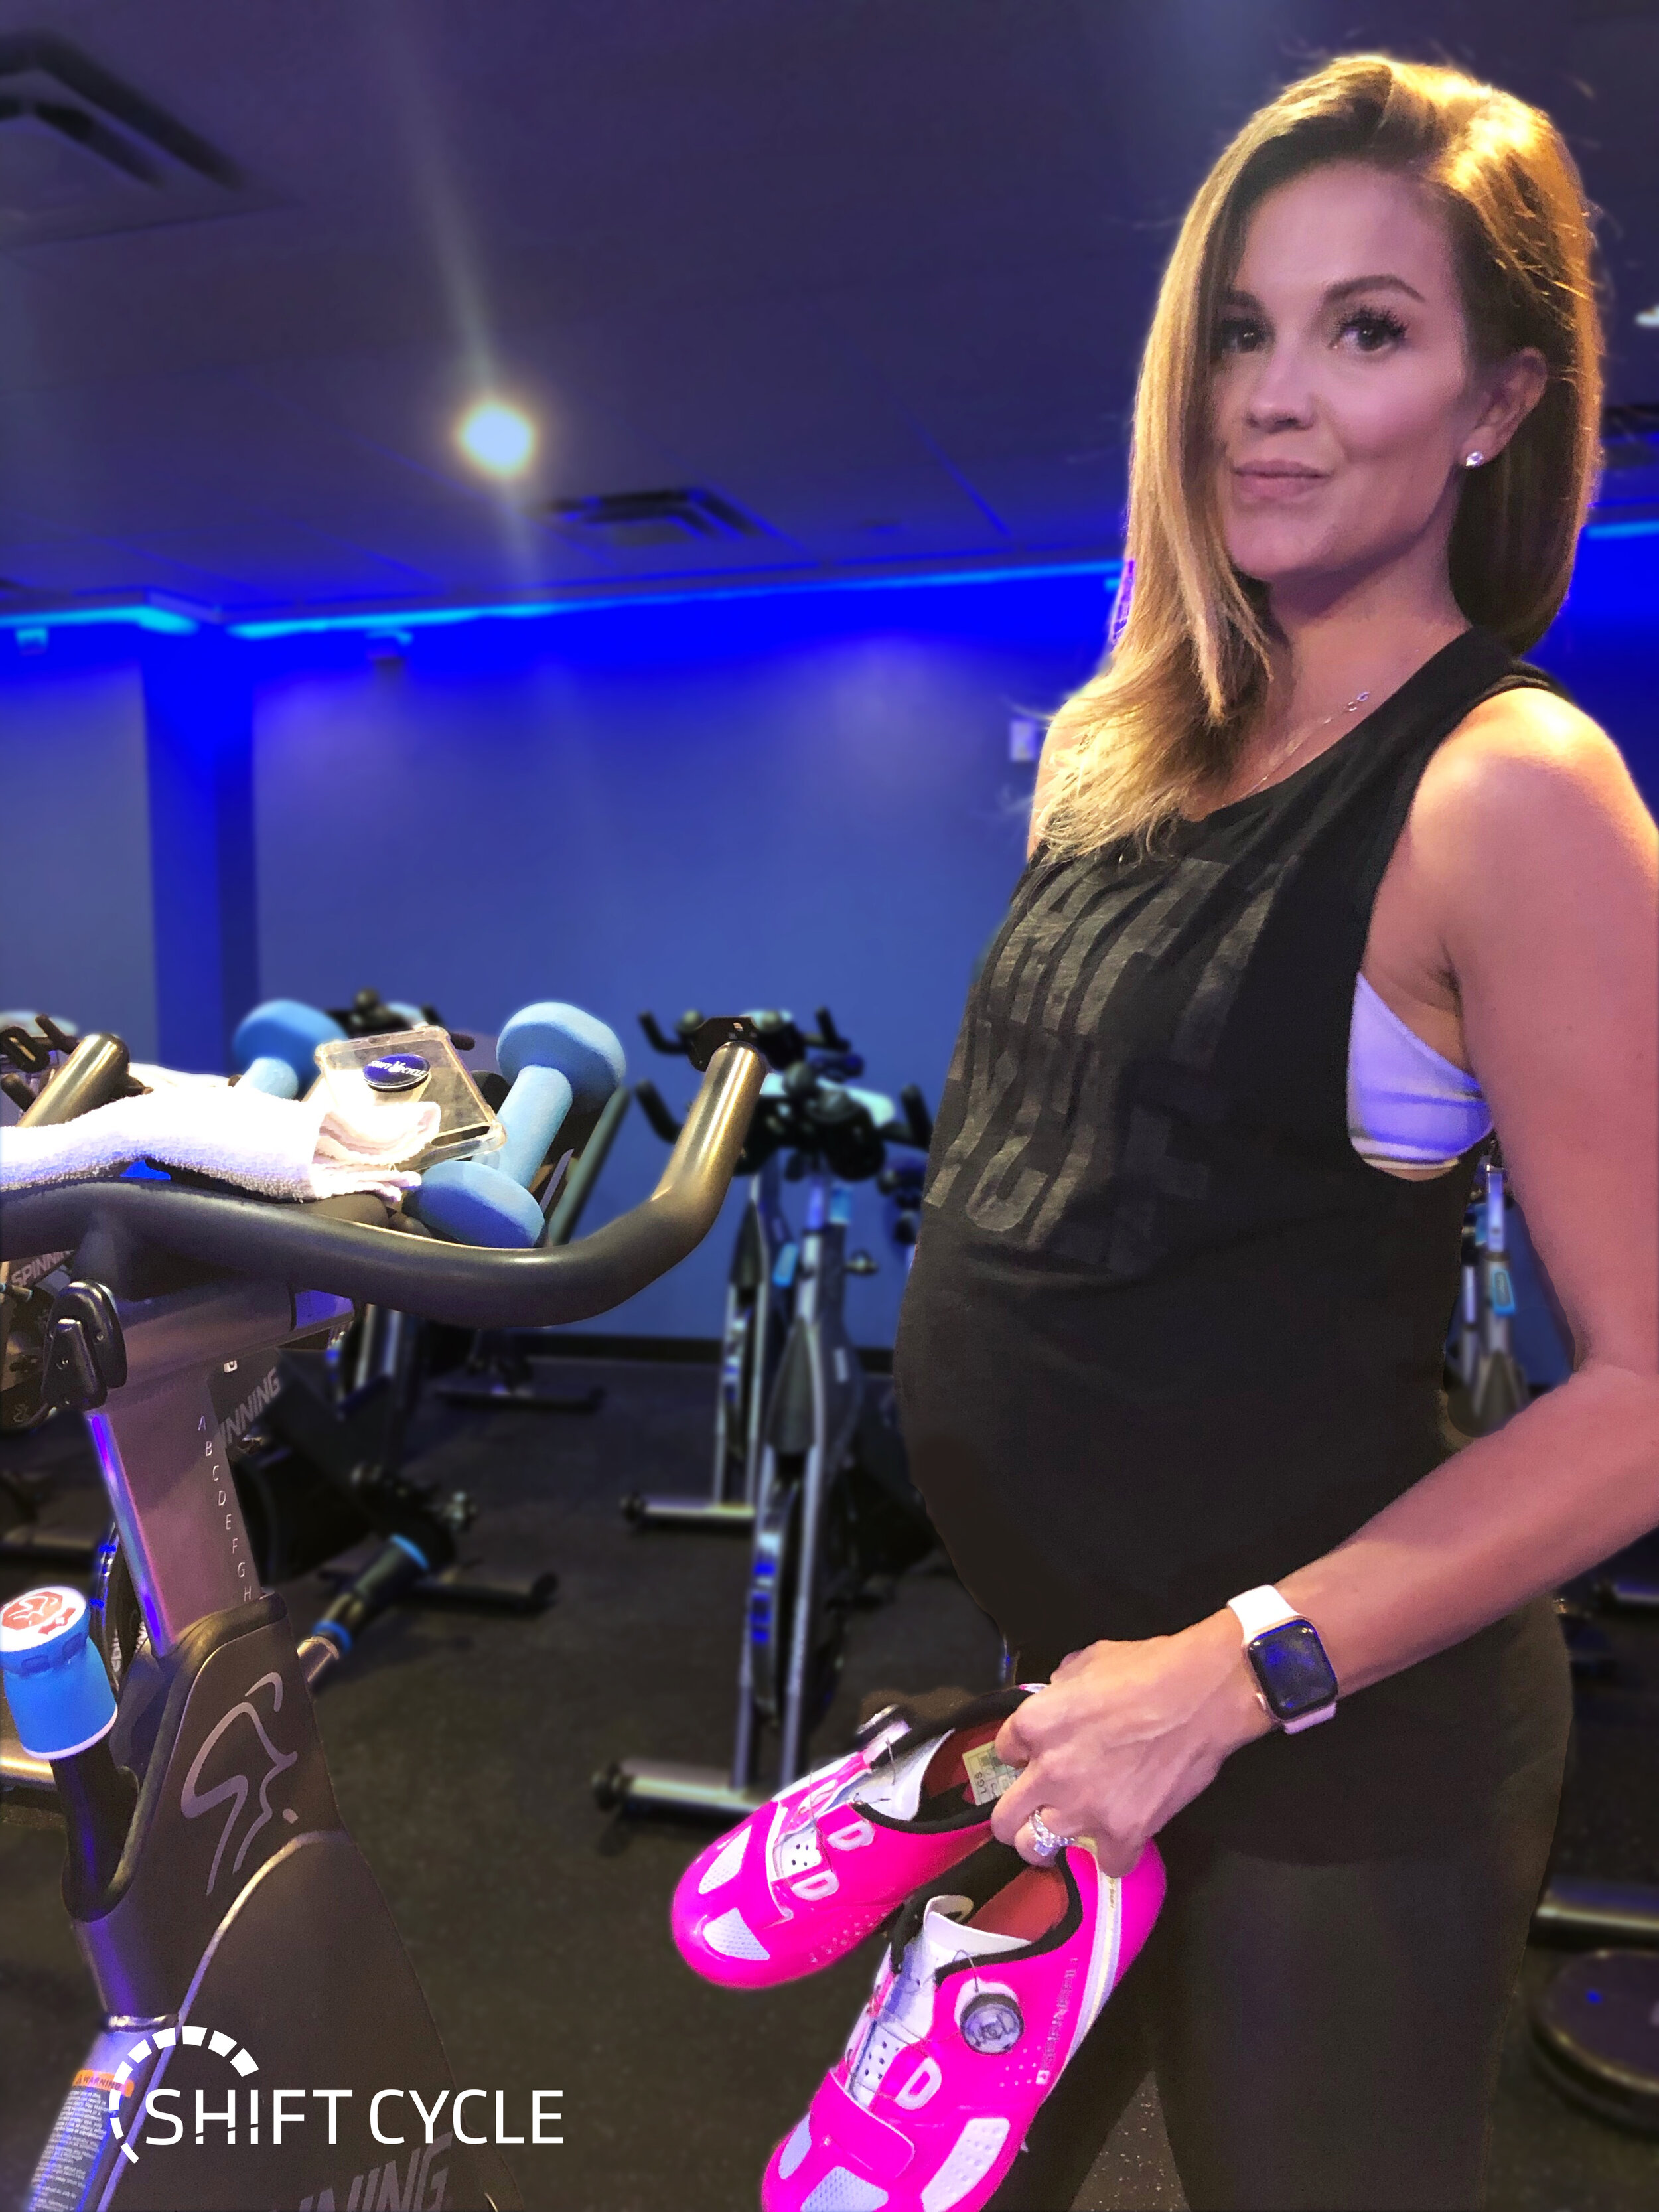 Whitney Herman, Founder & Owner of Shift Cycle + Fitness - 24 Weeks Pregnant